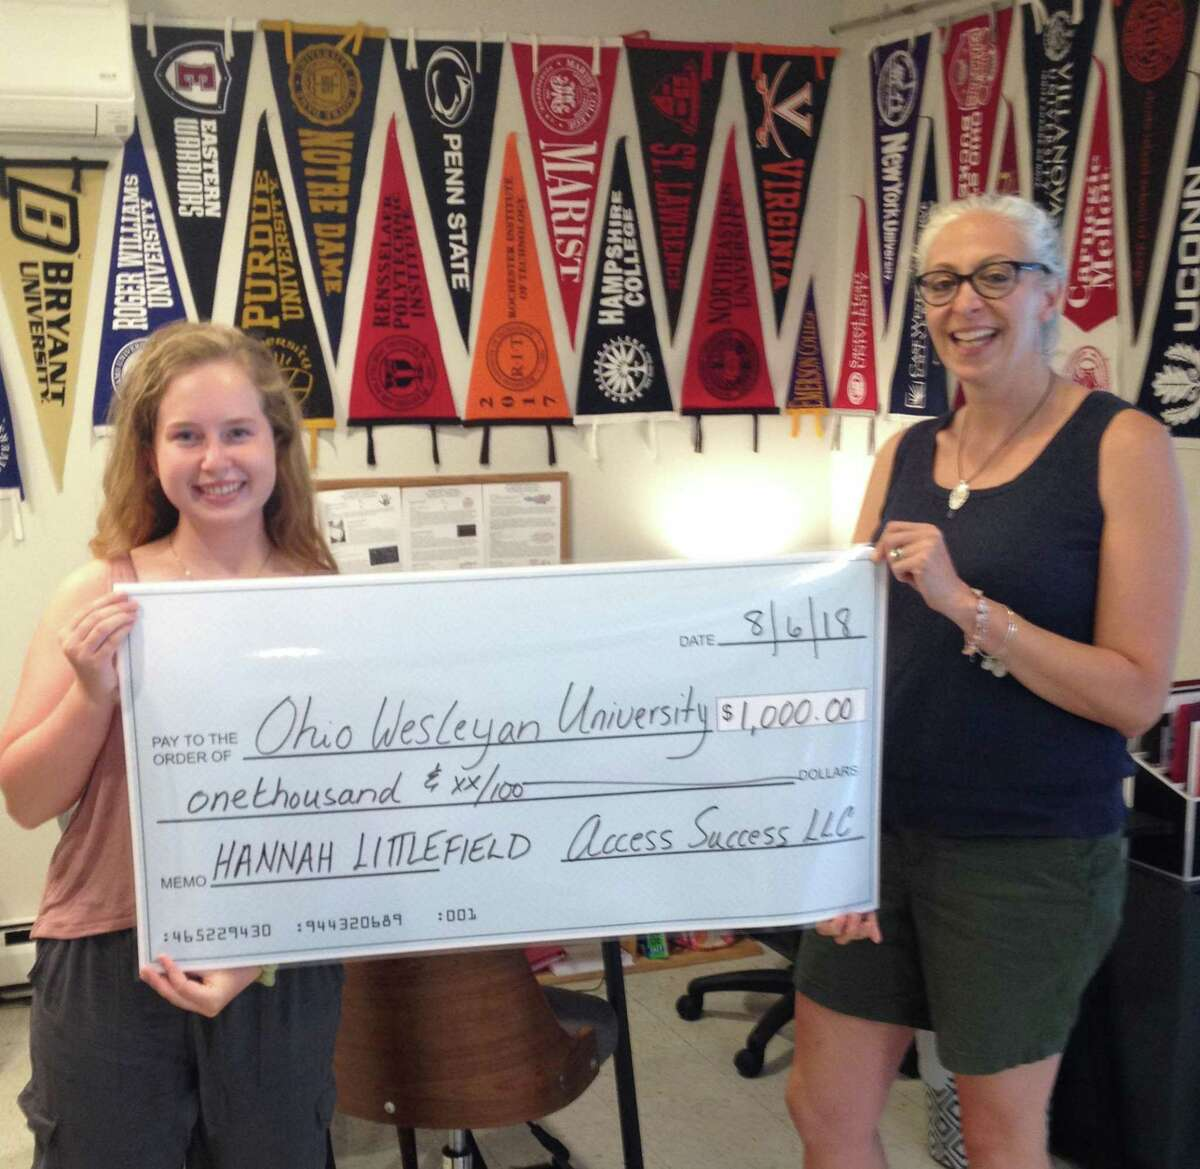 Access Success LLC in New Milford recently presented its inaugural $1,000 annual scholarship to Hannah Littlefield of New Milford, a 2018 New Milford High School graduate. Hannah is enrolled at Ohio Wesleyan University. Of the 60 students Access Success worked with this past application cycle who qualified to apply for this scholarship, a dozen applicants did so. Hannah is shown above with Francesca Morrissey of Access Success.